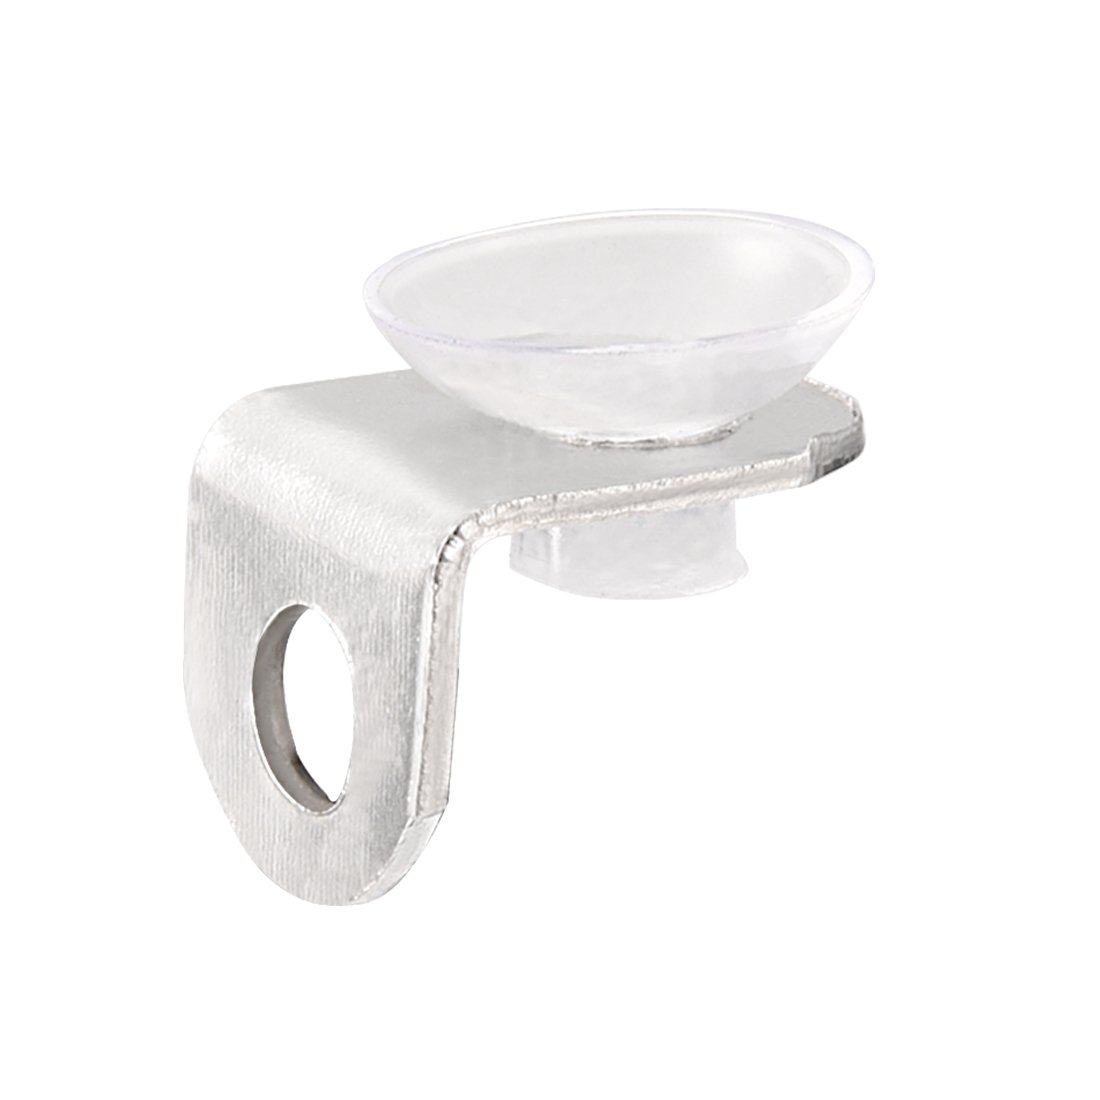 uxcell Right Degree Suction Cup Glass Shelf Support Clamp Clip Bracket 20pcs US-SA-AJD-257555